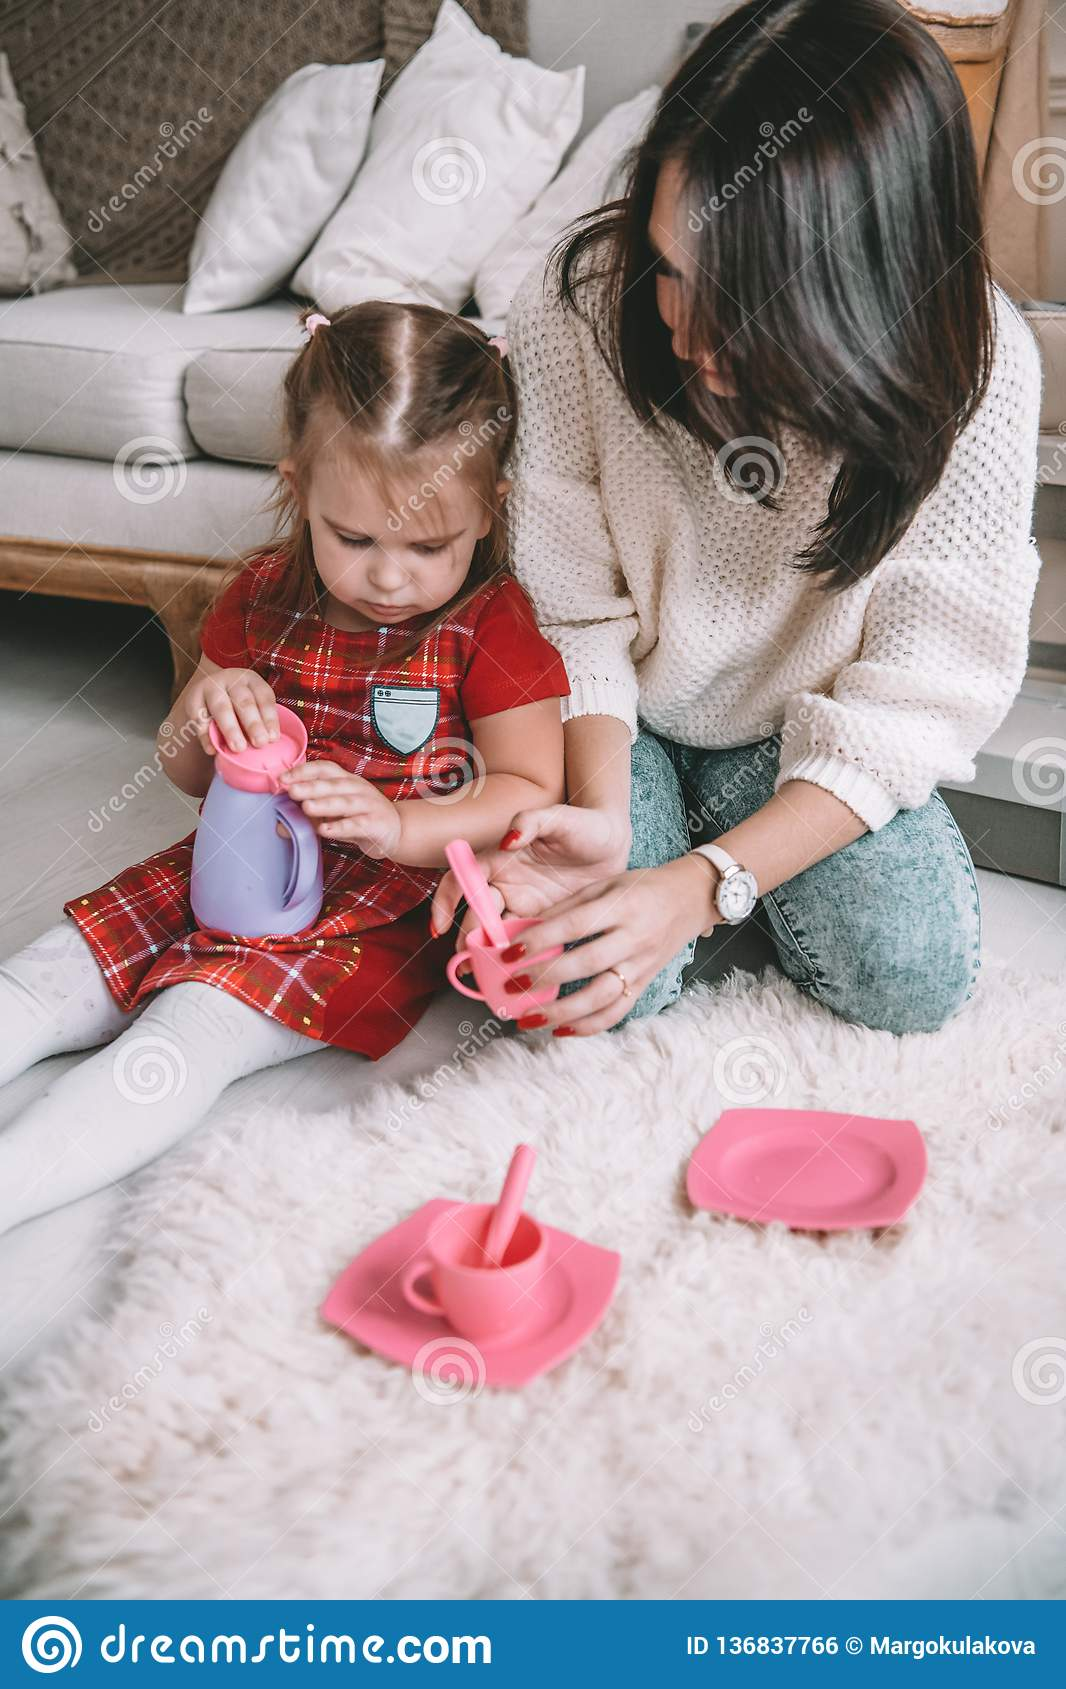 Happy loving family. Mother and her daughter girl play tea-party and drink tea from cups in children room. Funny mom and